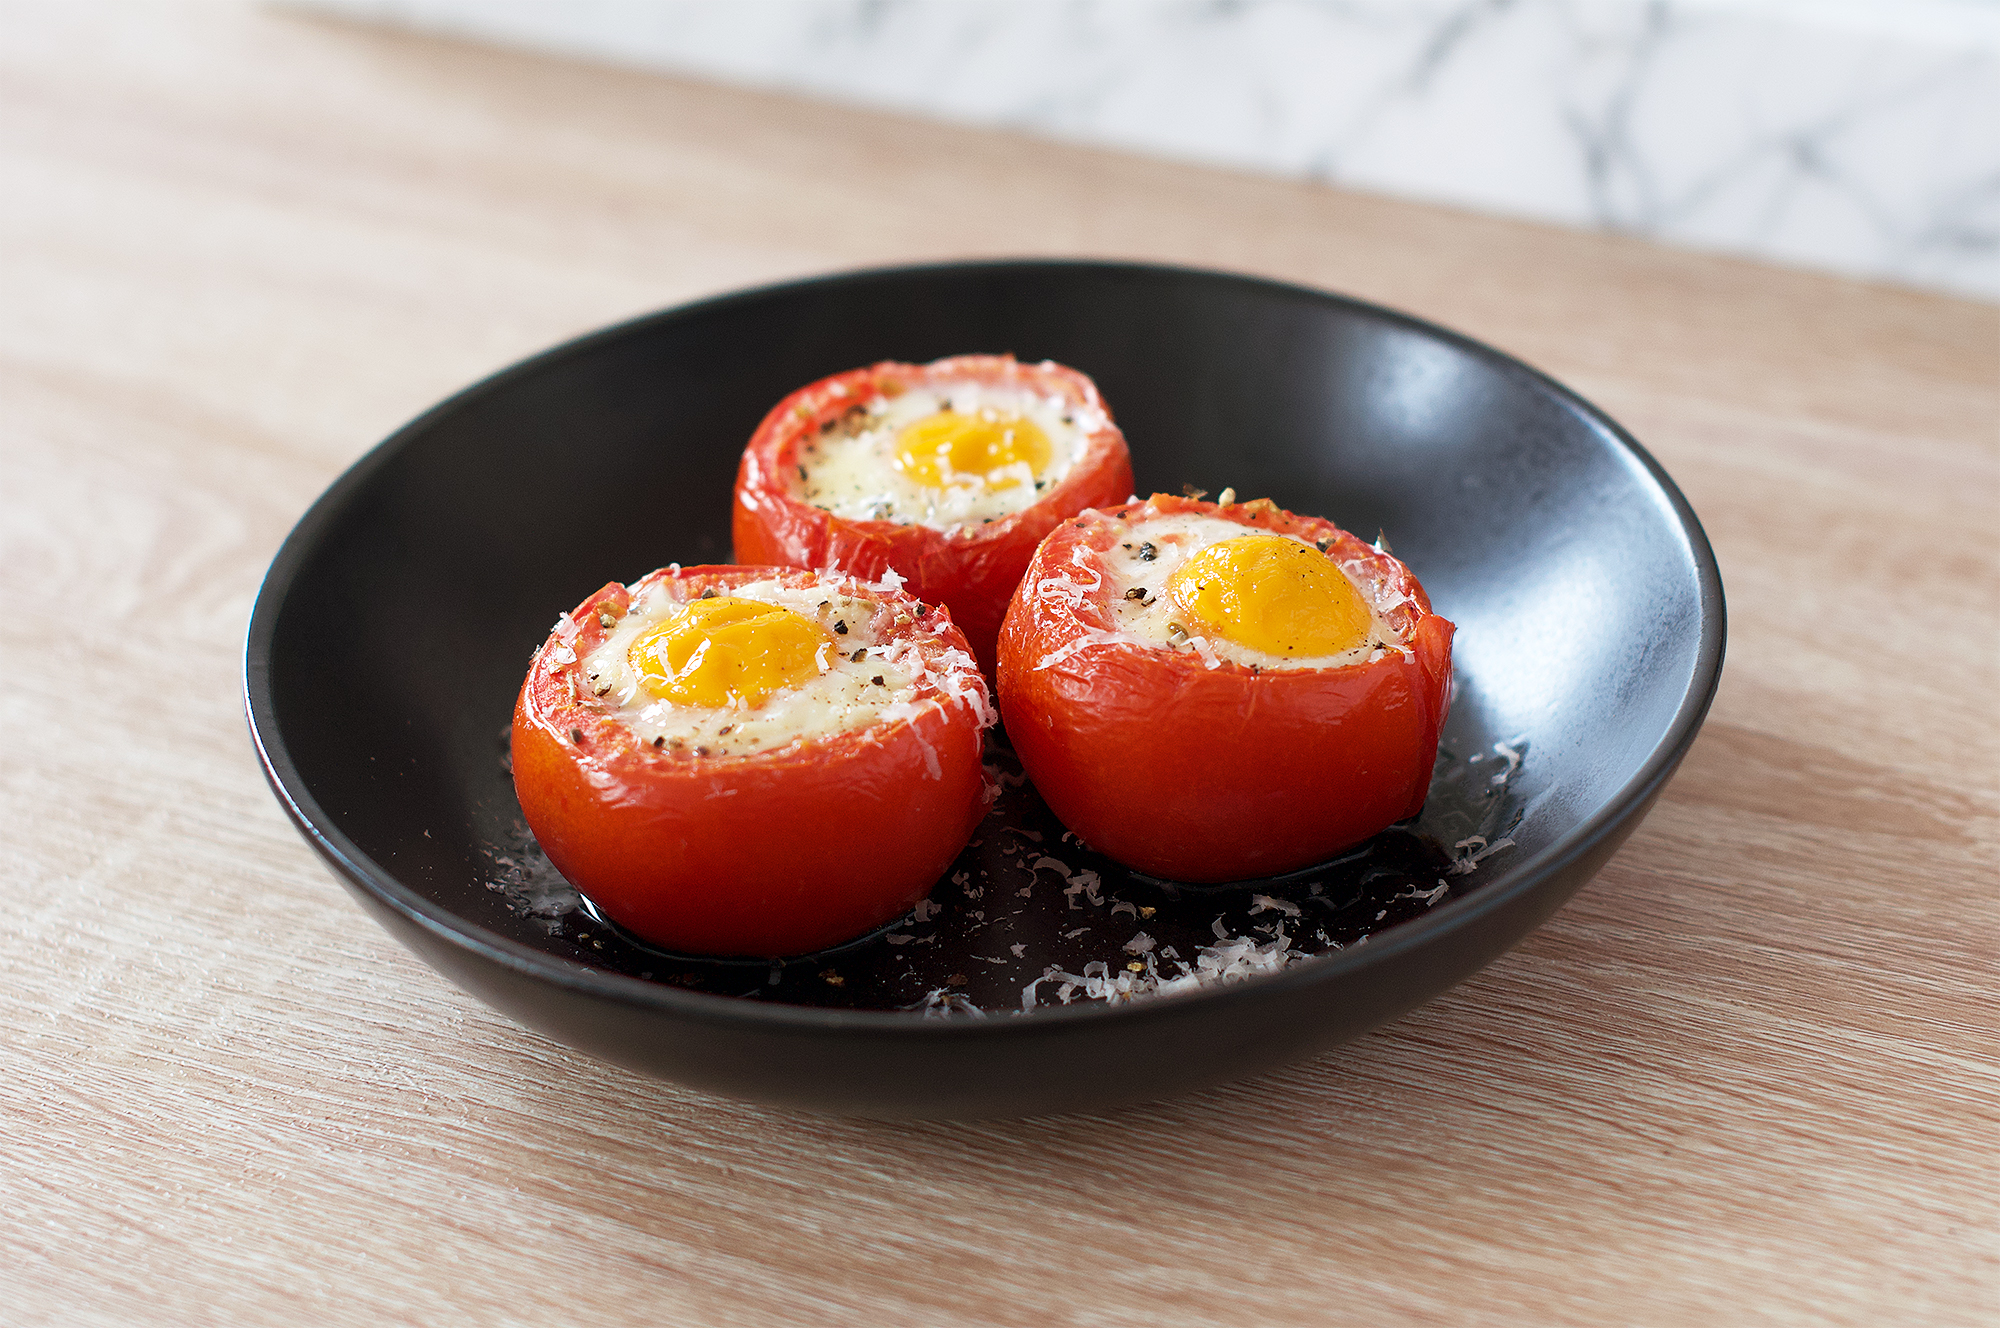 Oven-baked Tomato Eggs Recipe